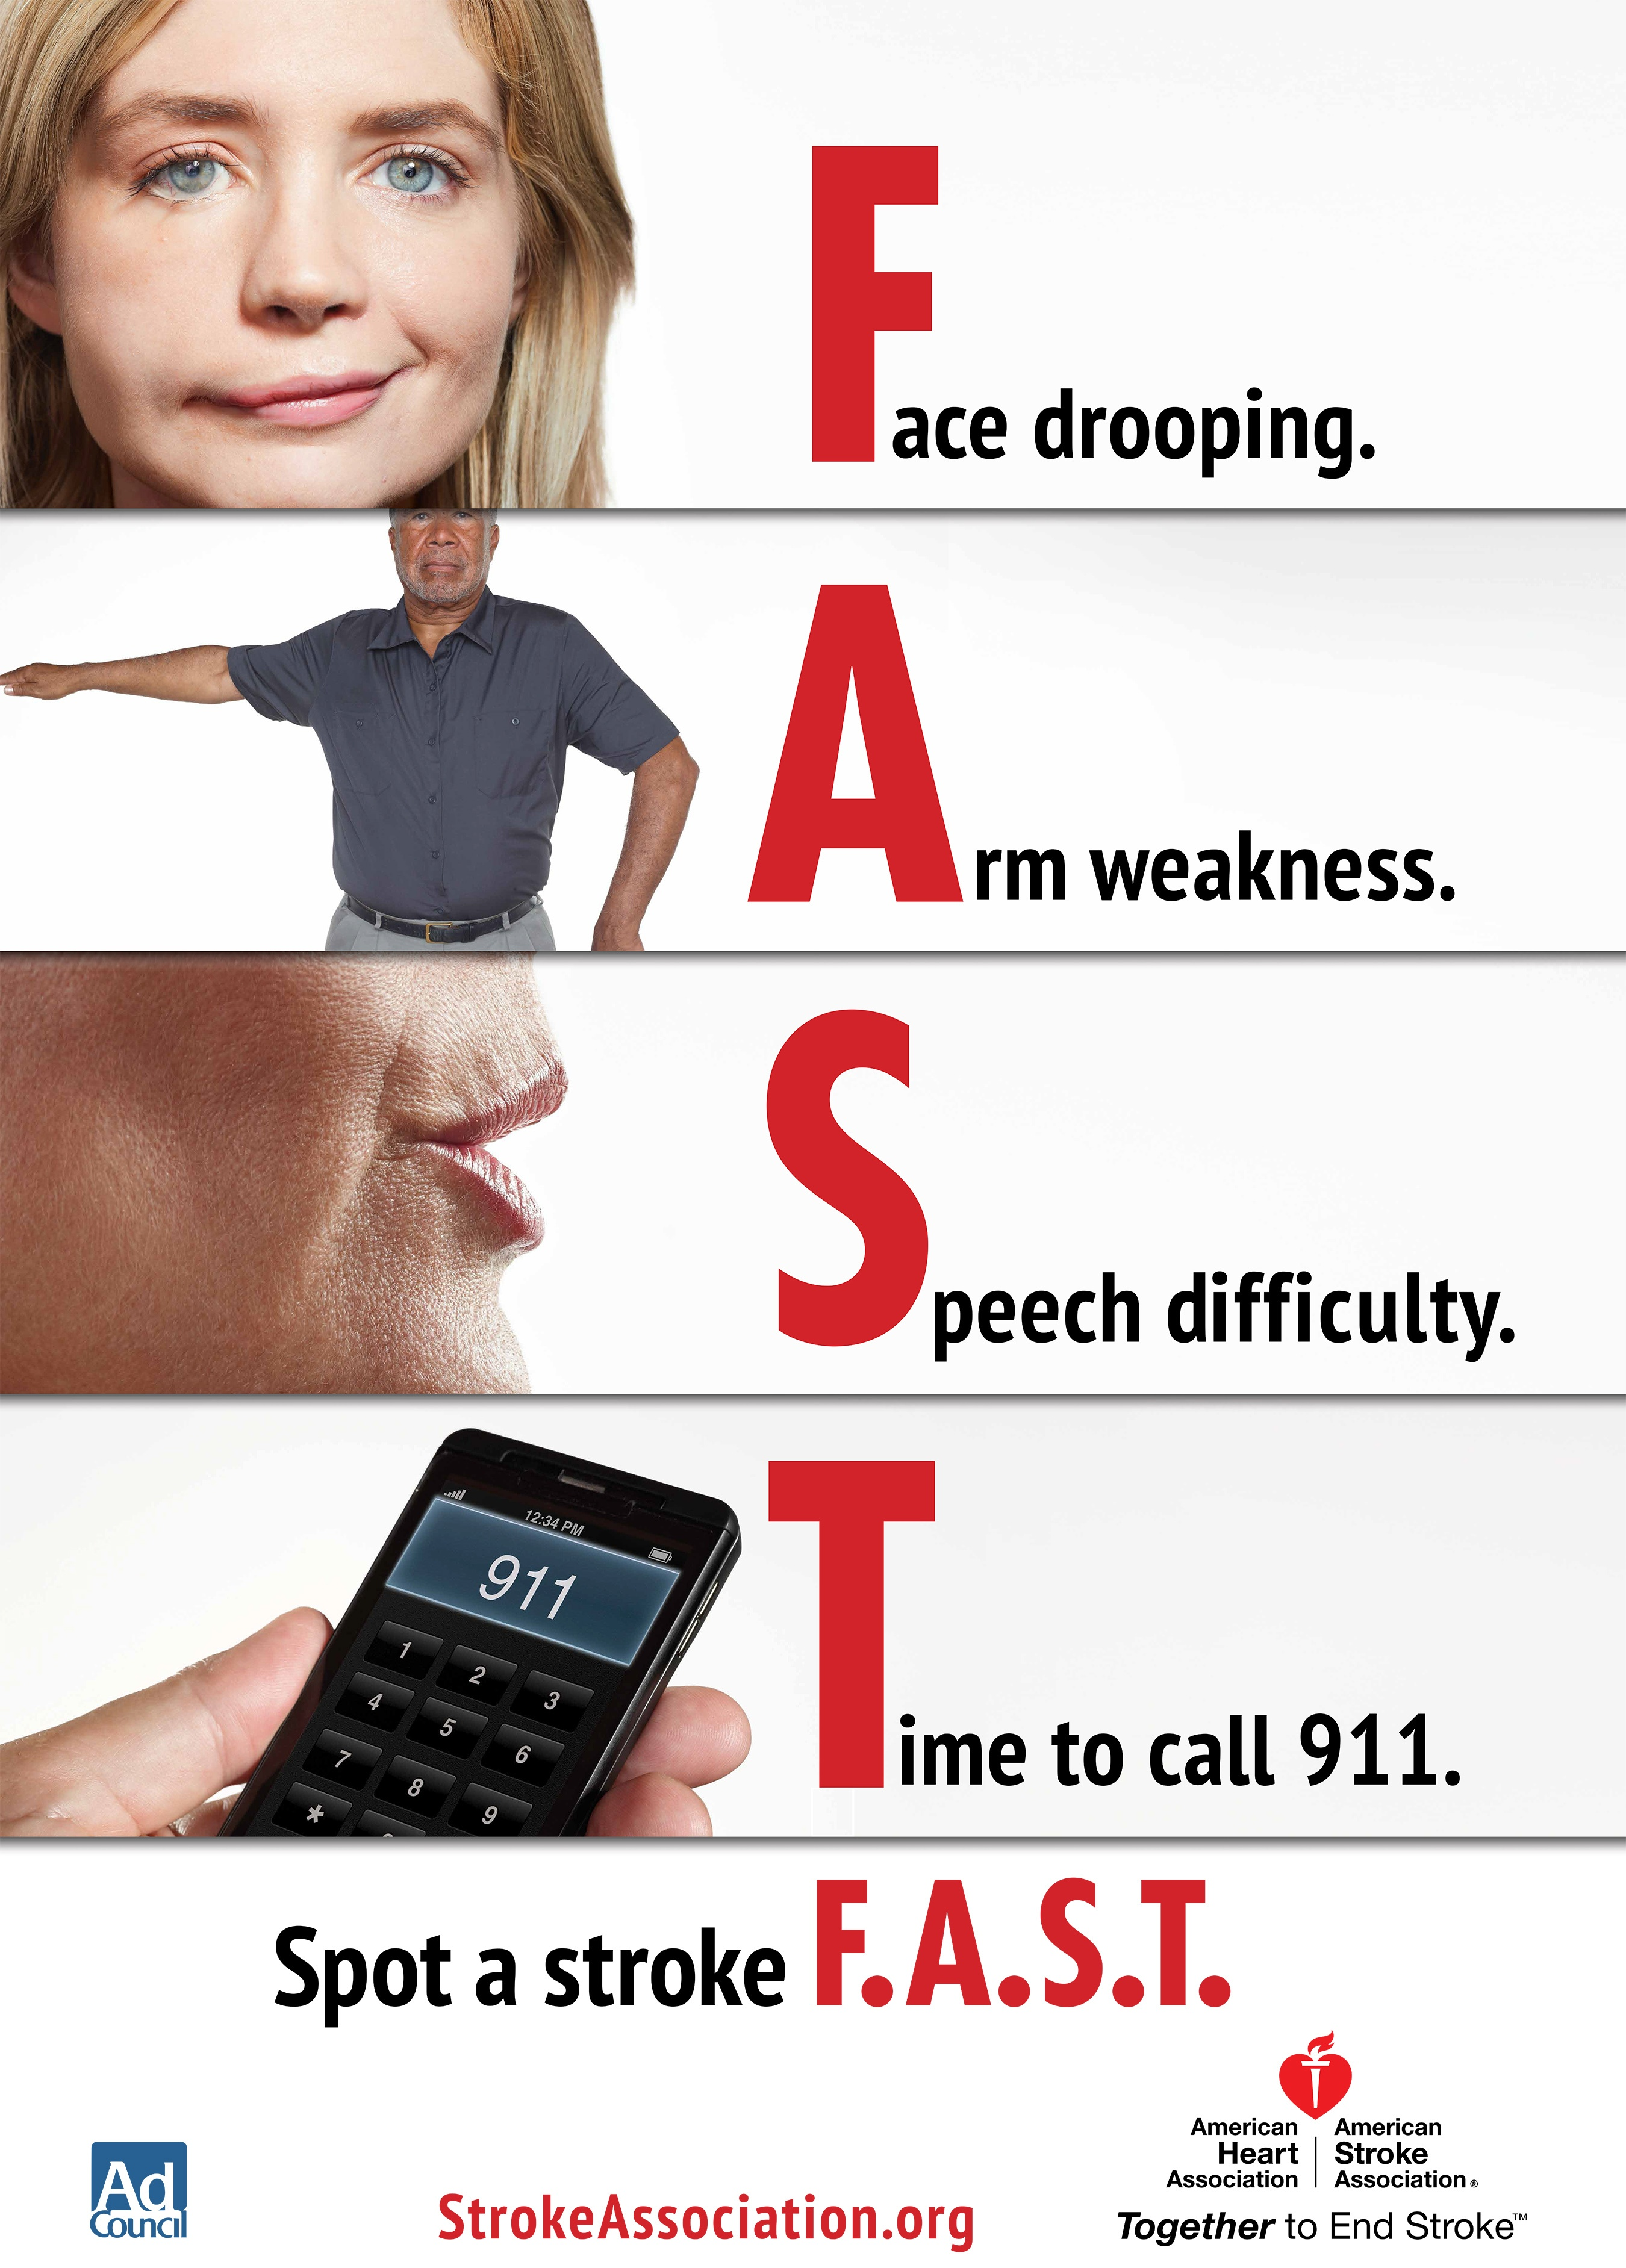 ACT-FAST-STROKE-ASSOCIATION